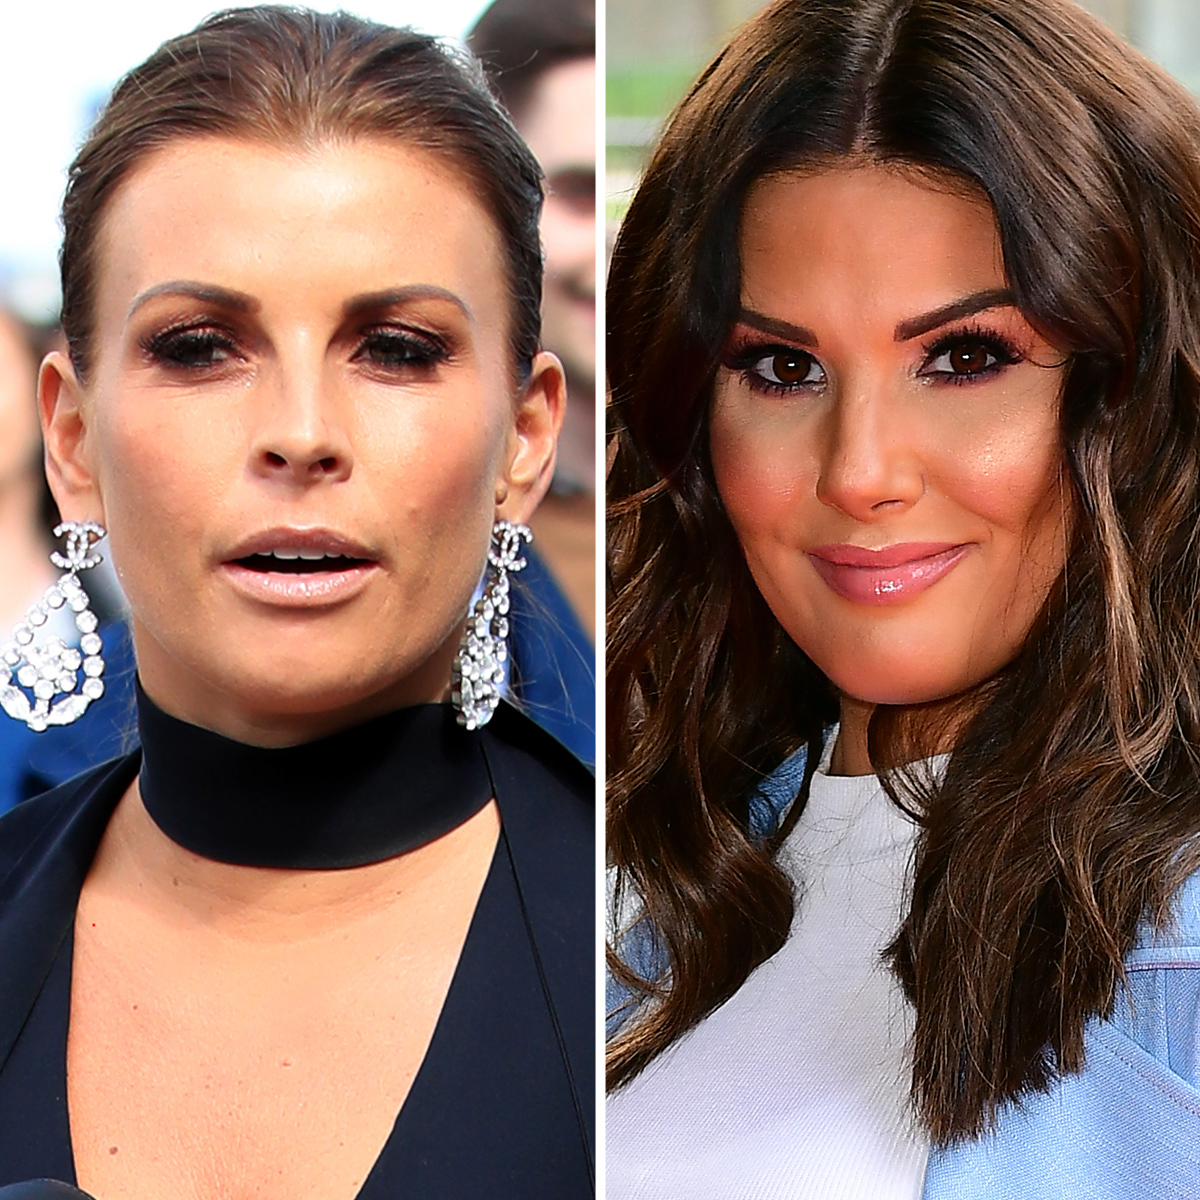 Coleen Rooney and Rebekah Vardy drama inspires 'Wagatha Christie' phone case